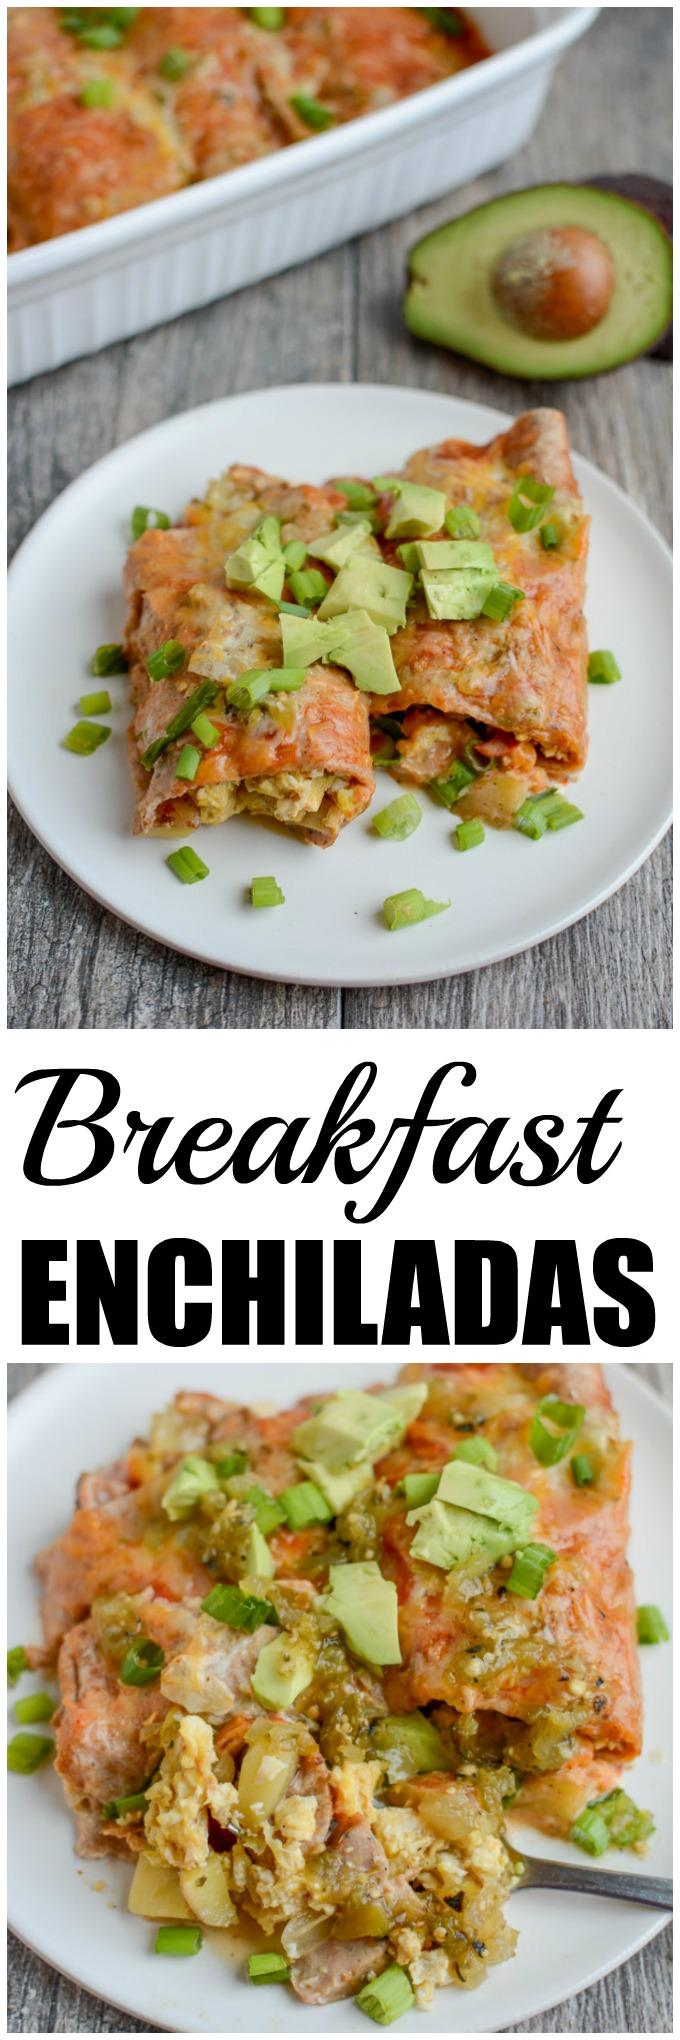 Breakfast Enchilada Casserole | Healthy Breakfast Recipe